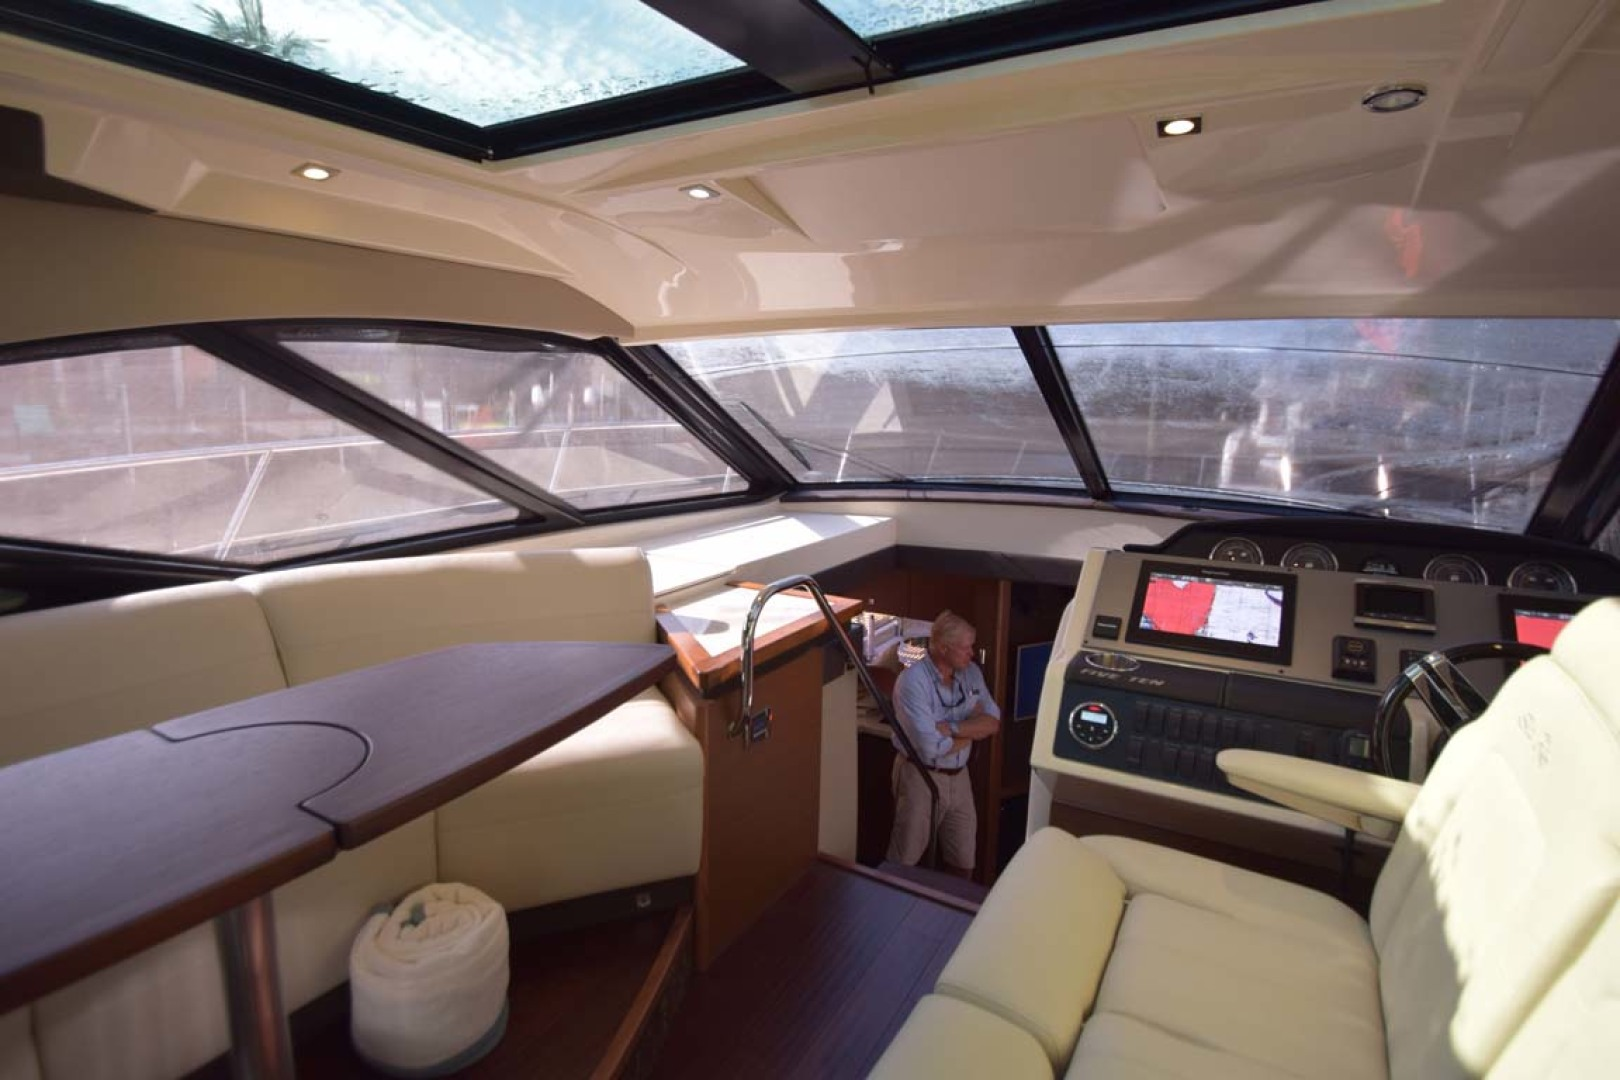 Sea Ray-510 Sundancer 2015 -Ft Lauderdale-Florida-United States-Salon View Towards Stairs For Lower Deck-1189926 | Thumbnail